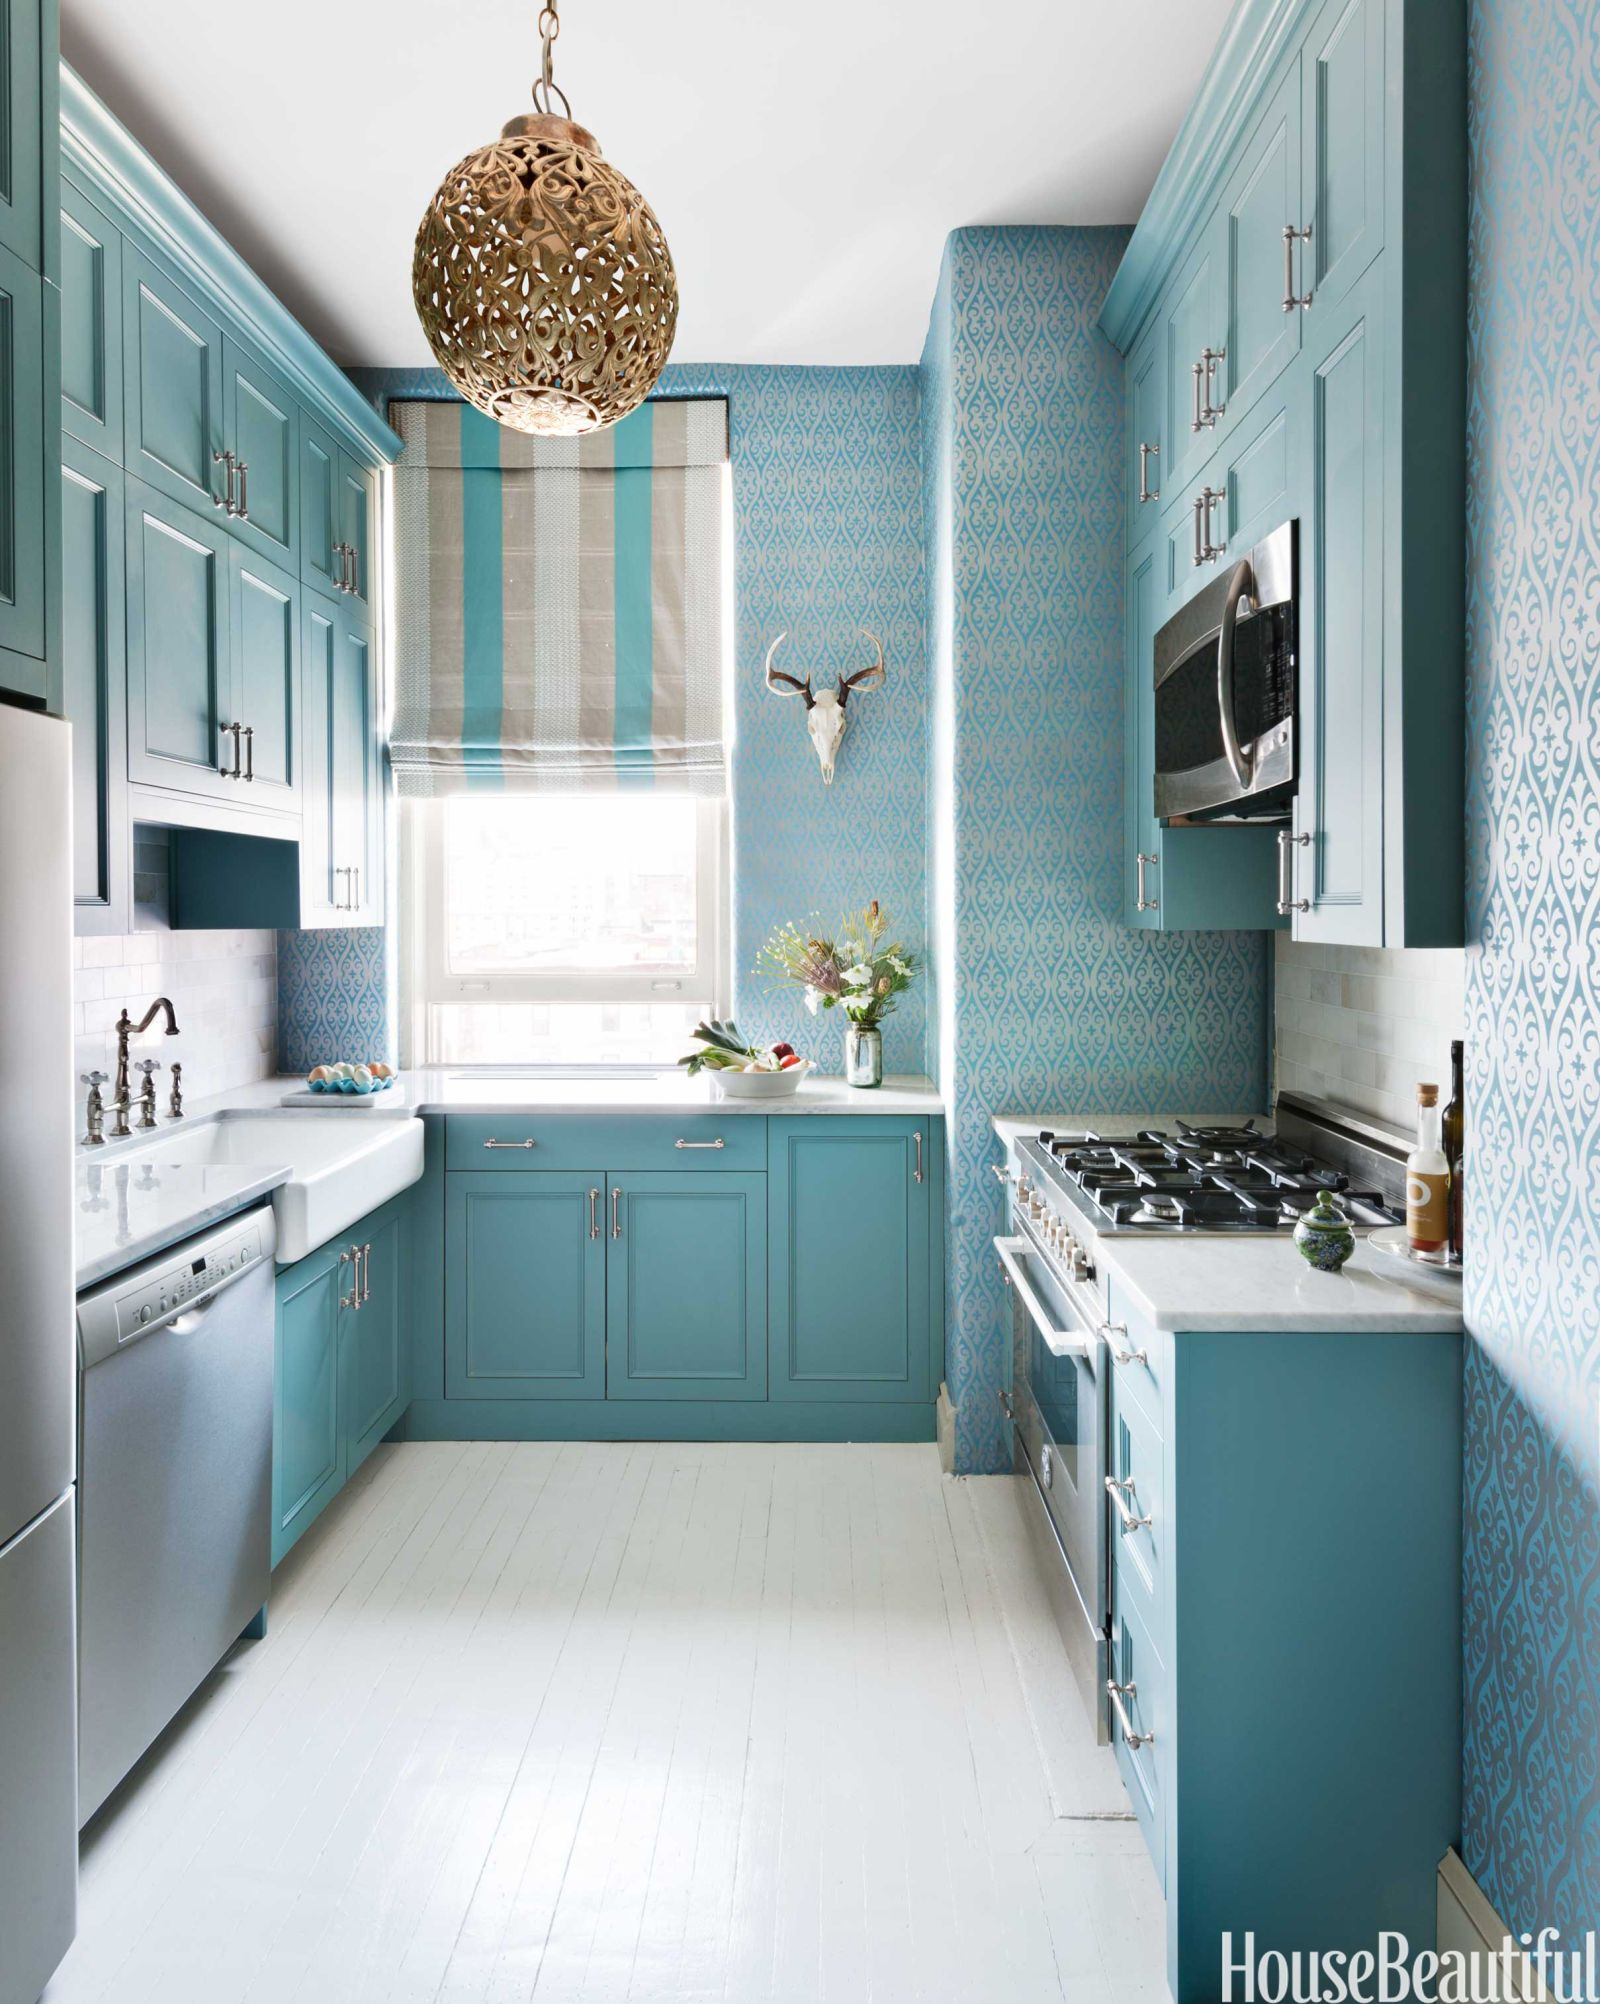 30 Small Kitchen Ideas That Maximize Style and Efficiency   Kitchens ...